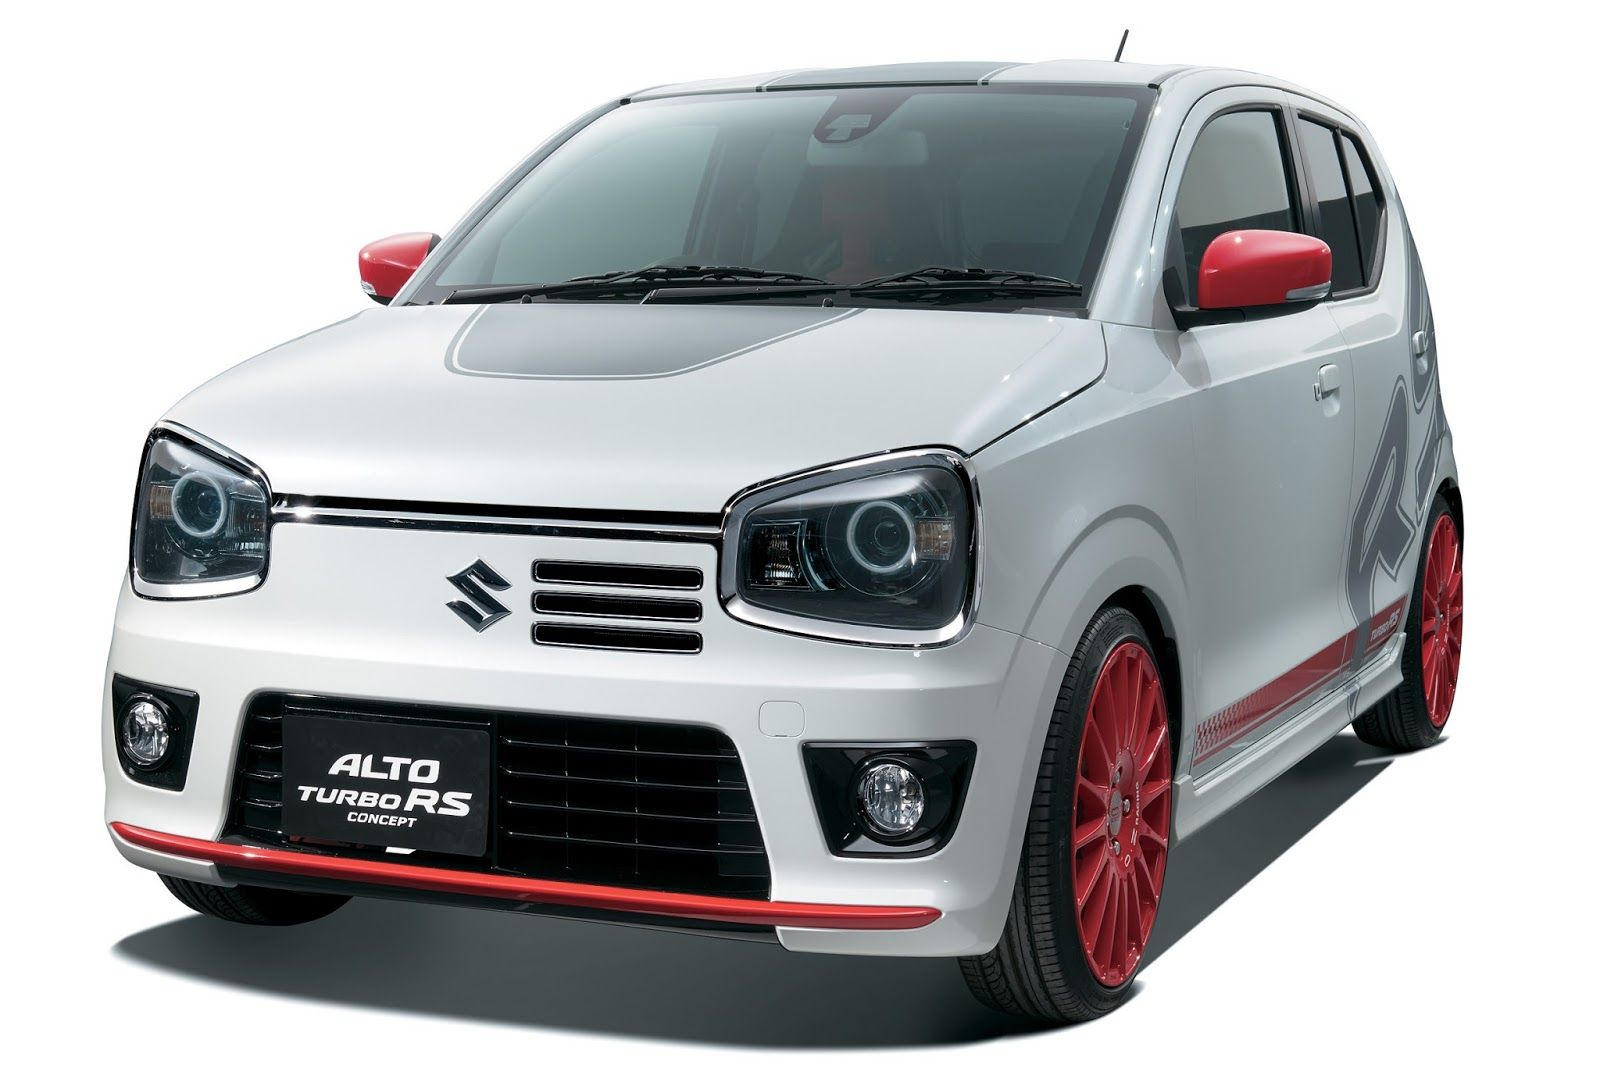 Suzuki alto rs turbo showcased in japan this is the upcoming rs variant of the latest kei car from suzuki the alto suzuki will officially reveal the model